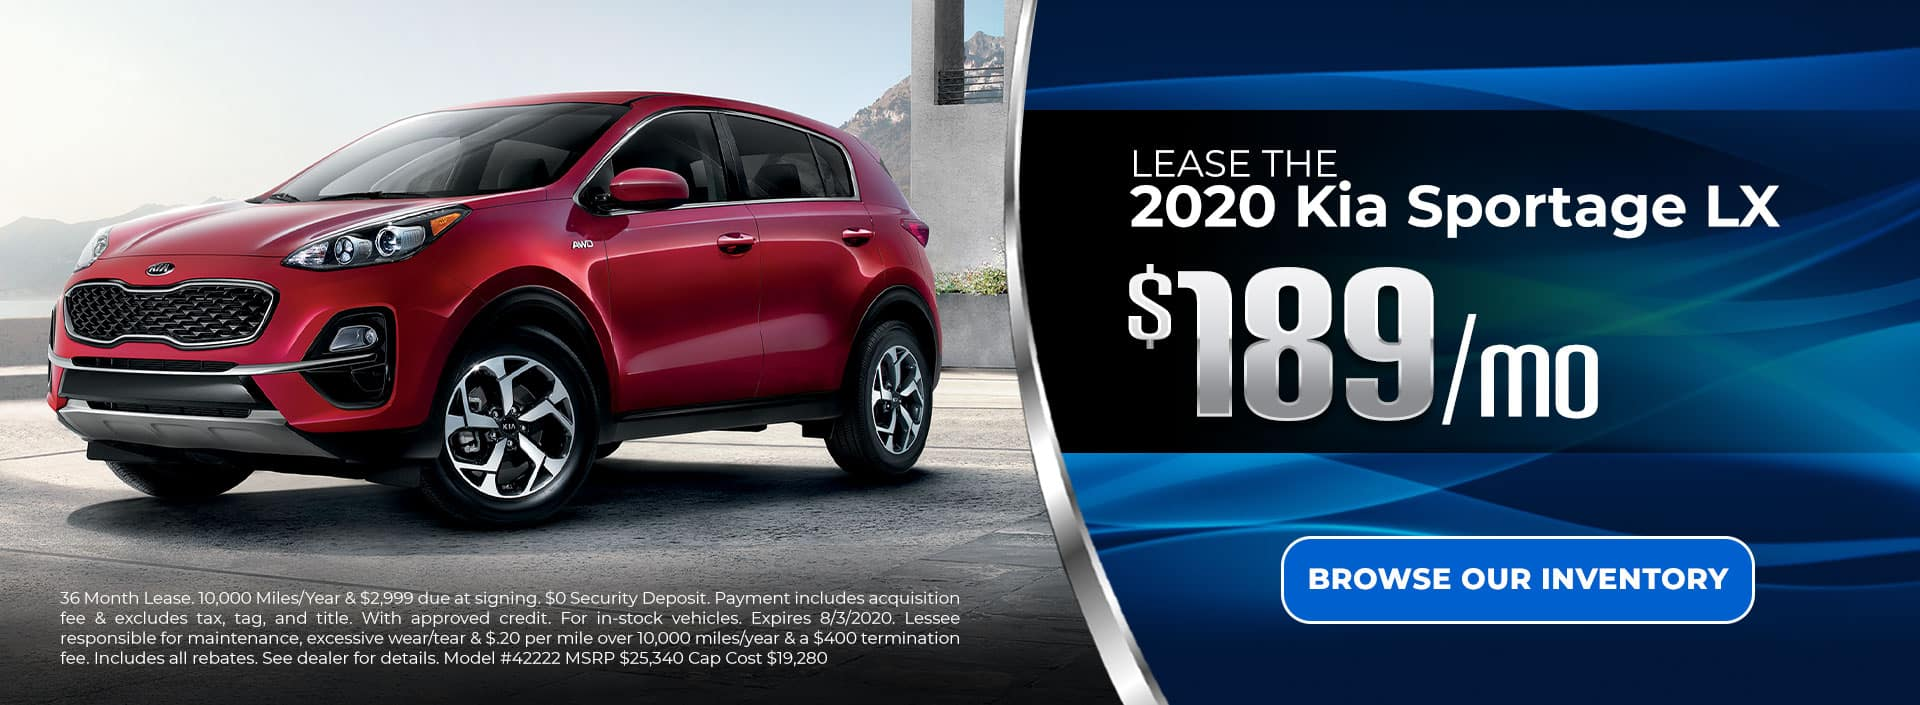 Lease 2020 Sportage for $189/mo